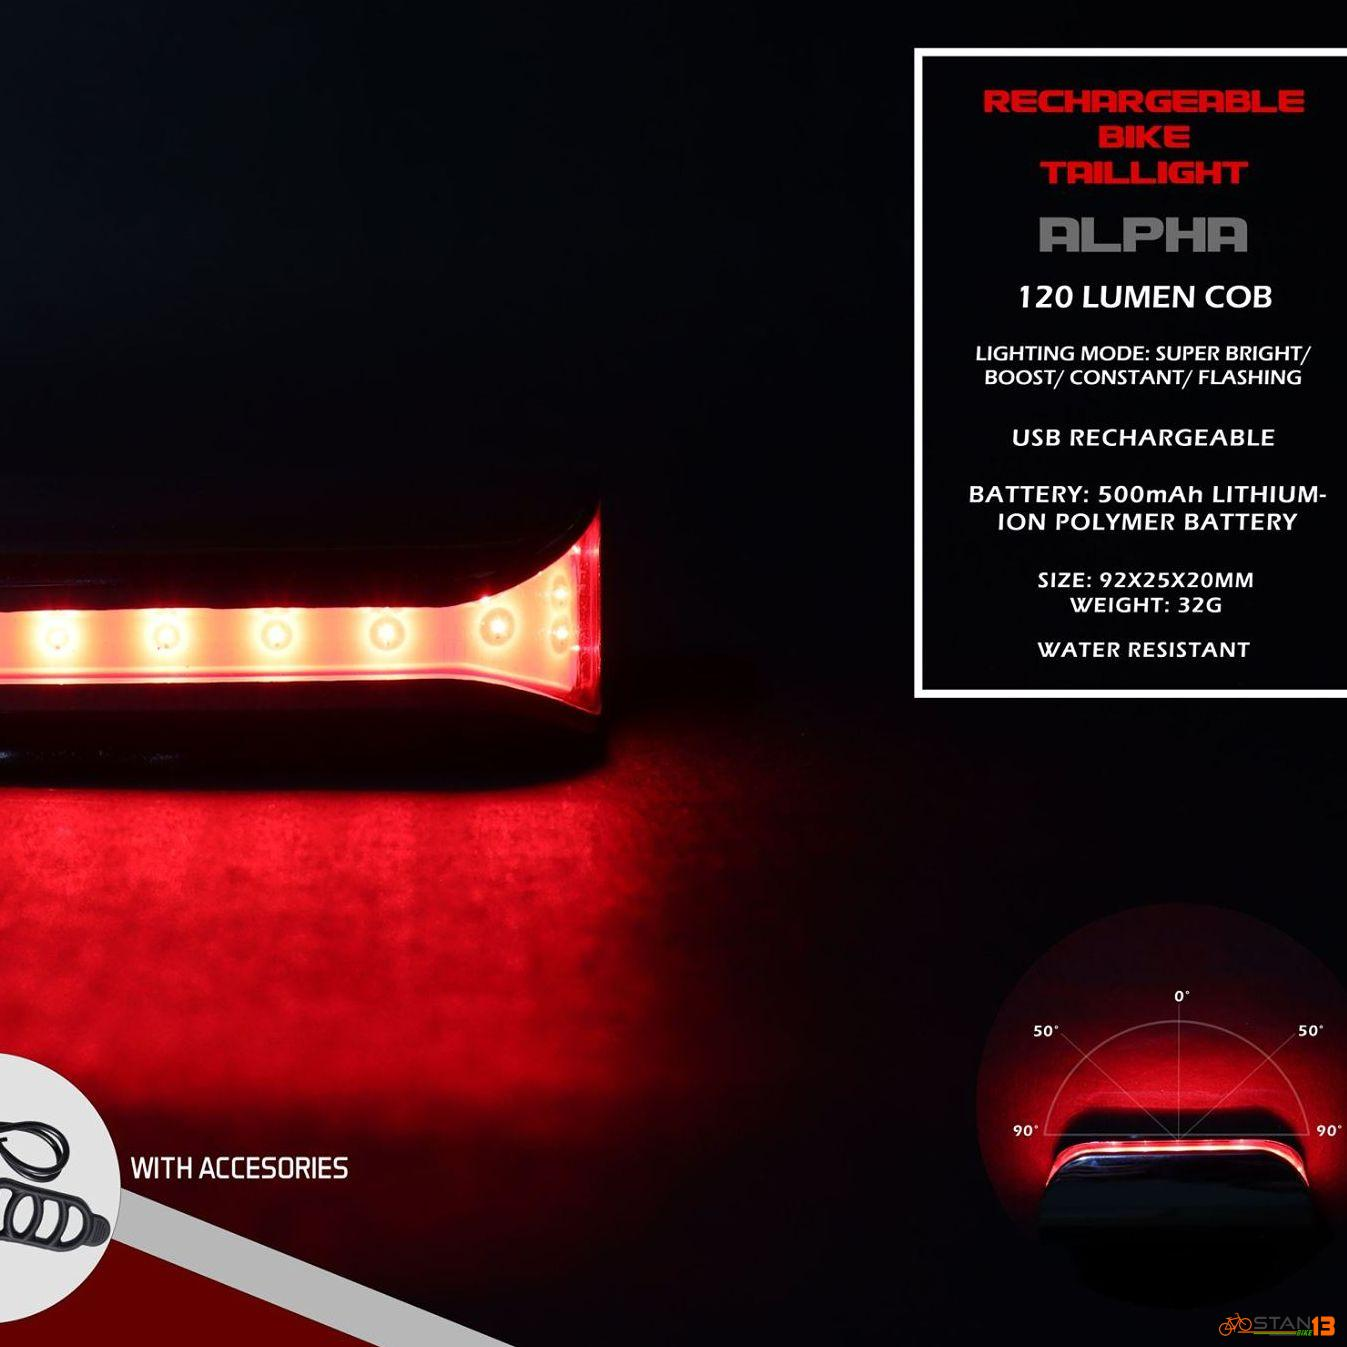 Light Weapon Alpha Tail Light 120 Lumens IPX5